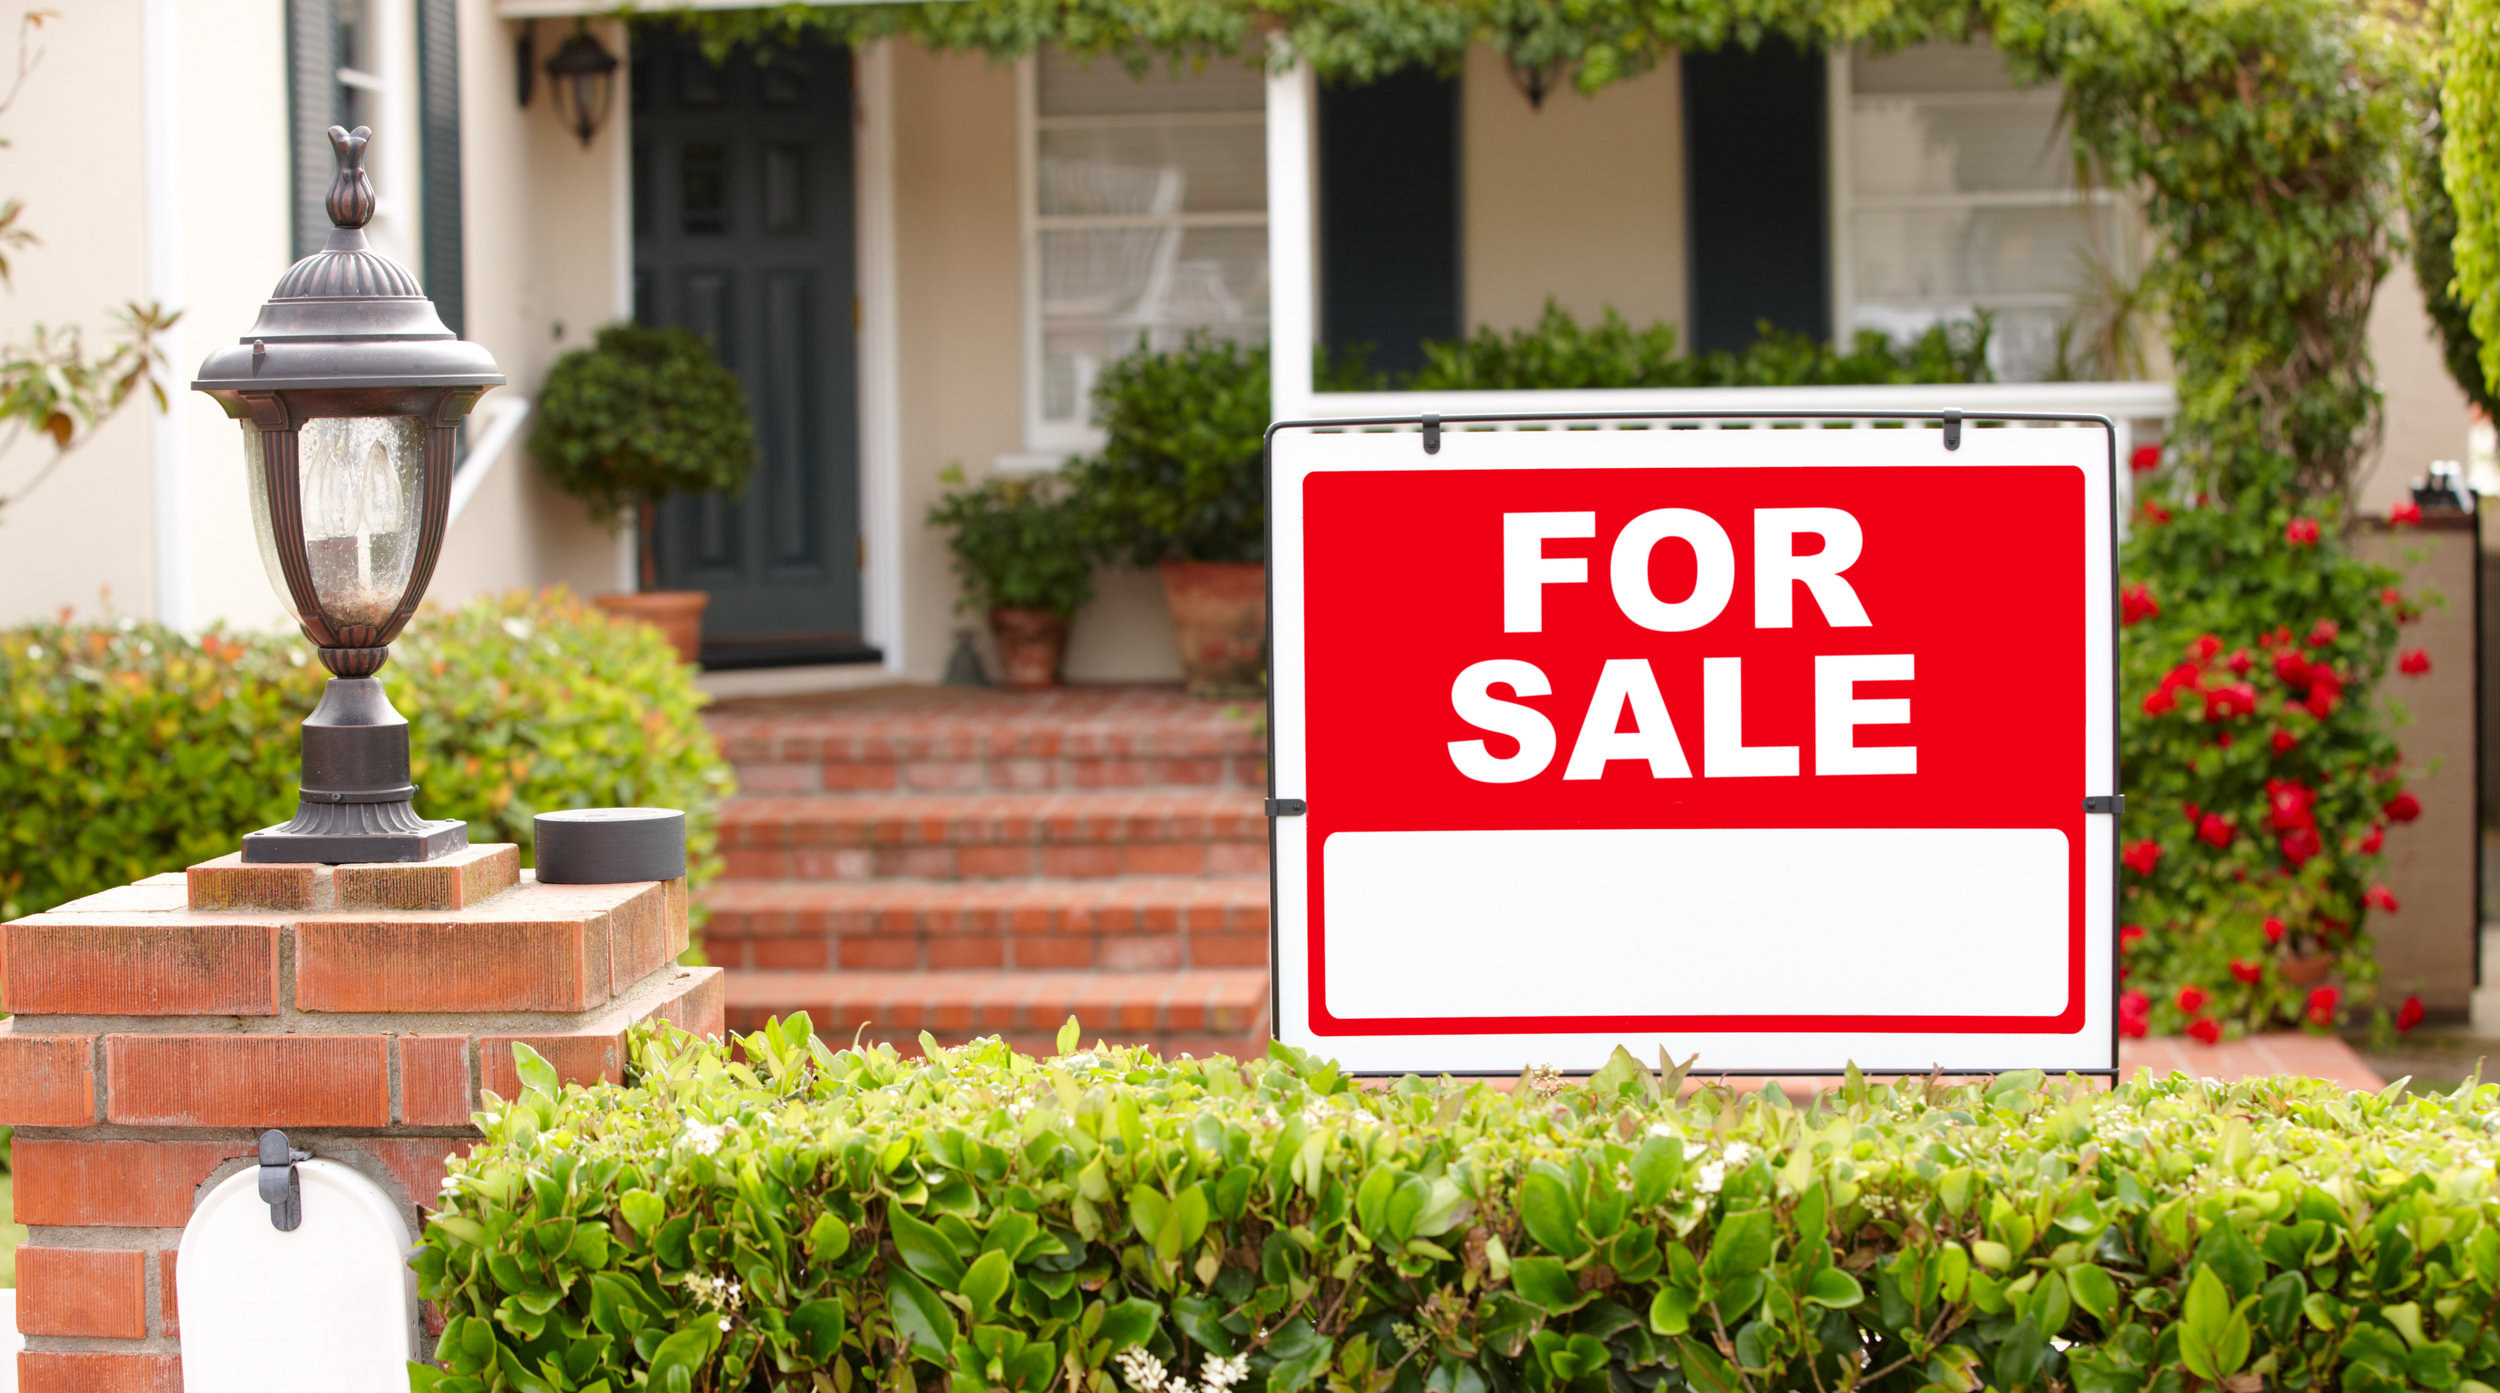 Tips-For-Selling-Your-Home-e1455664874629.jpg